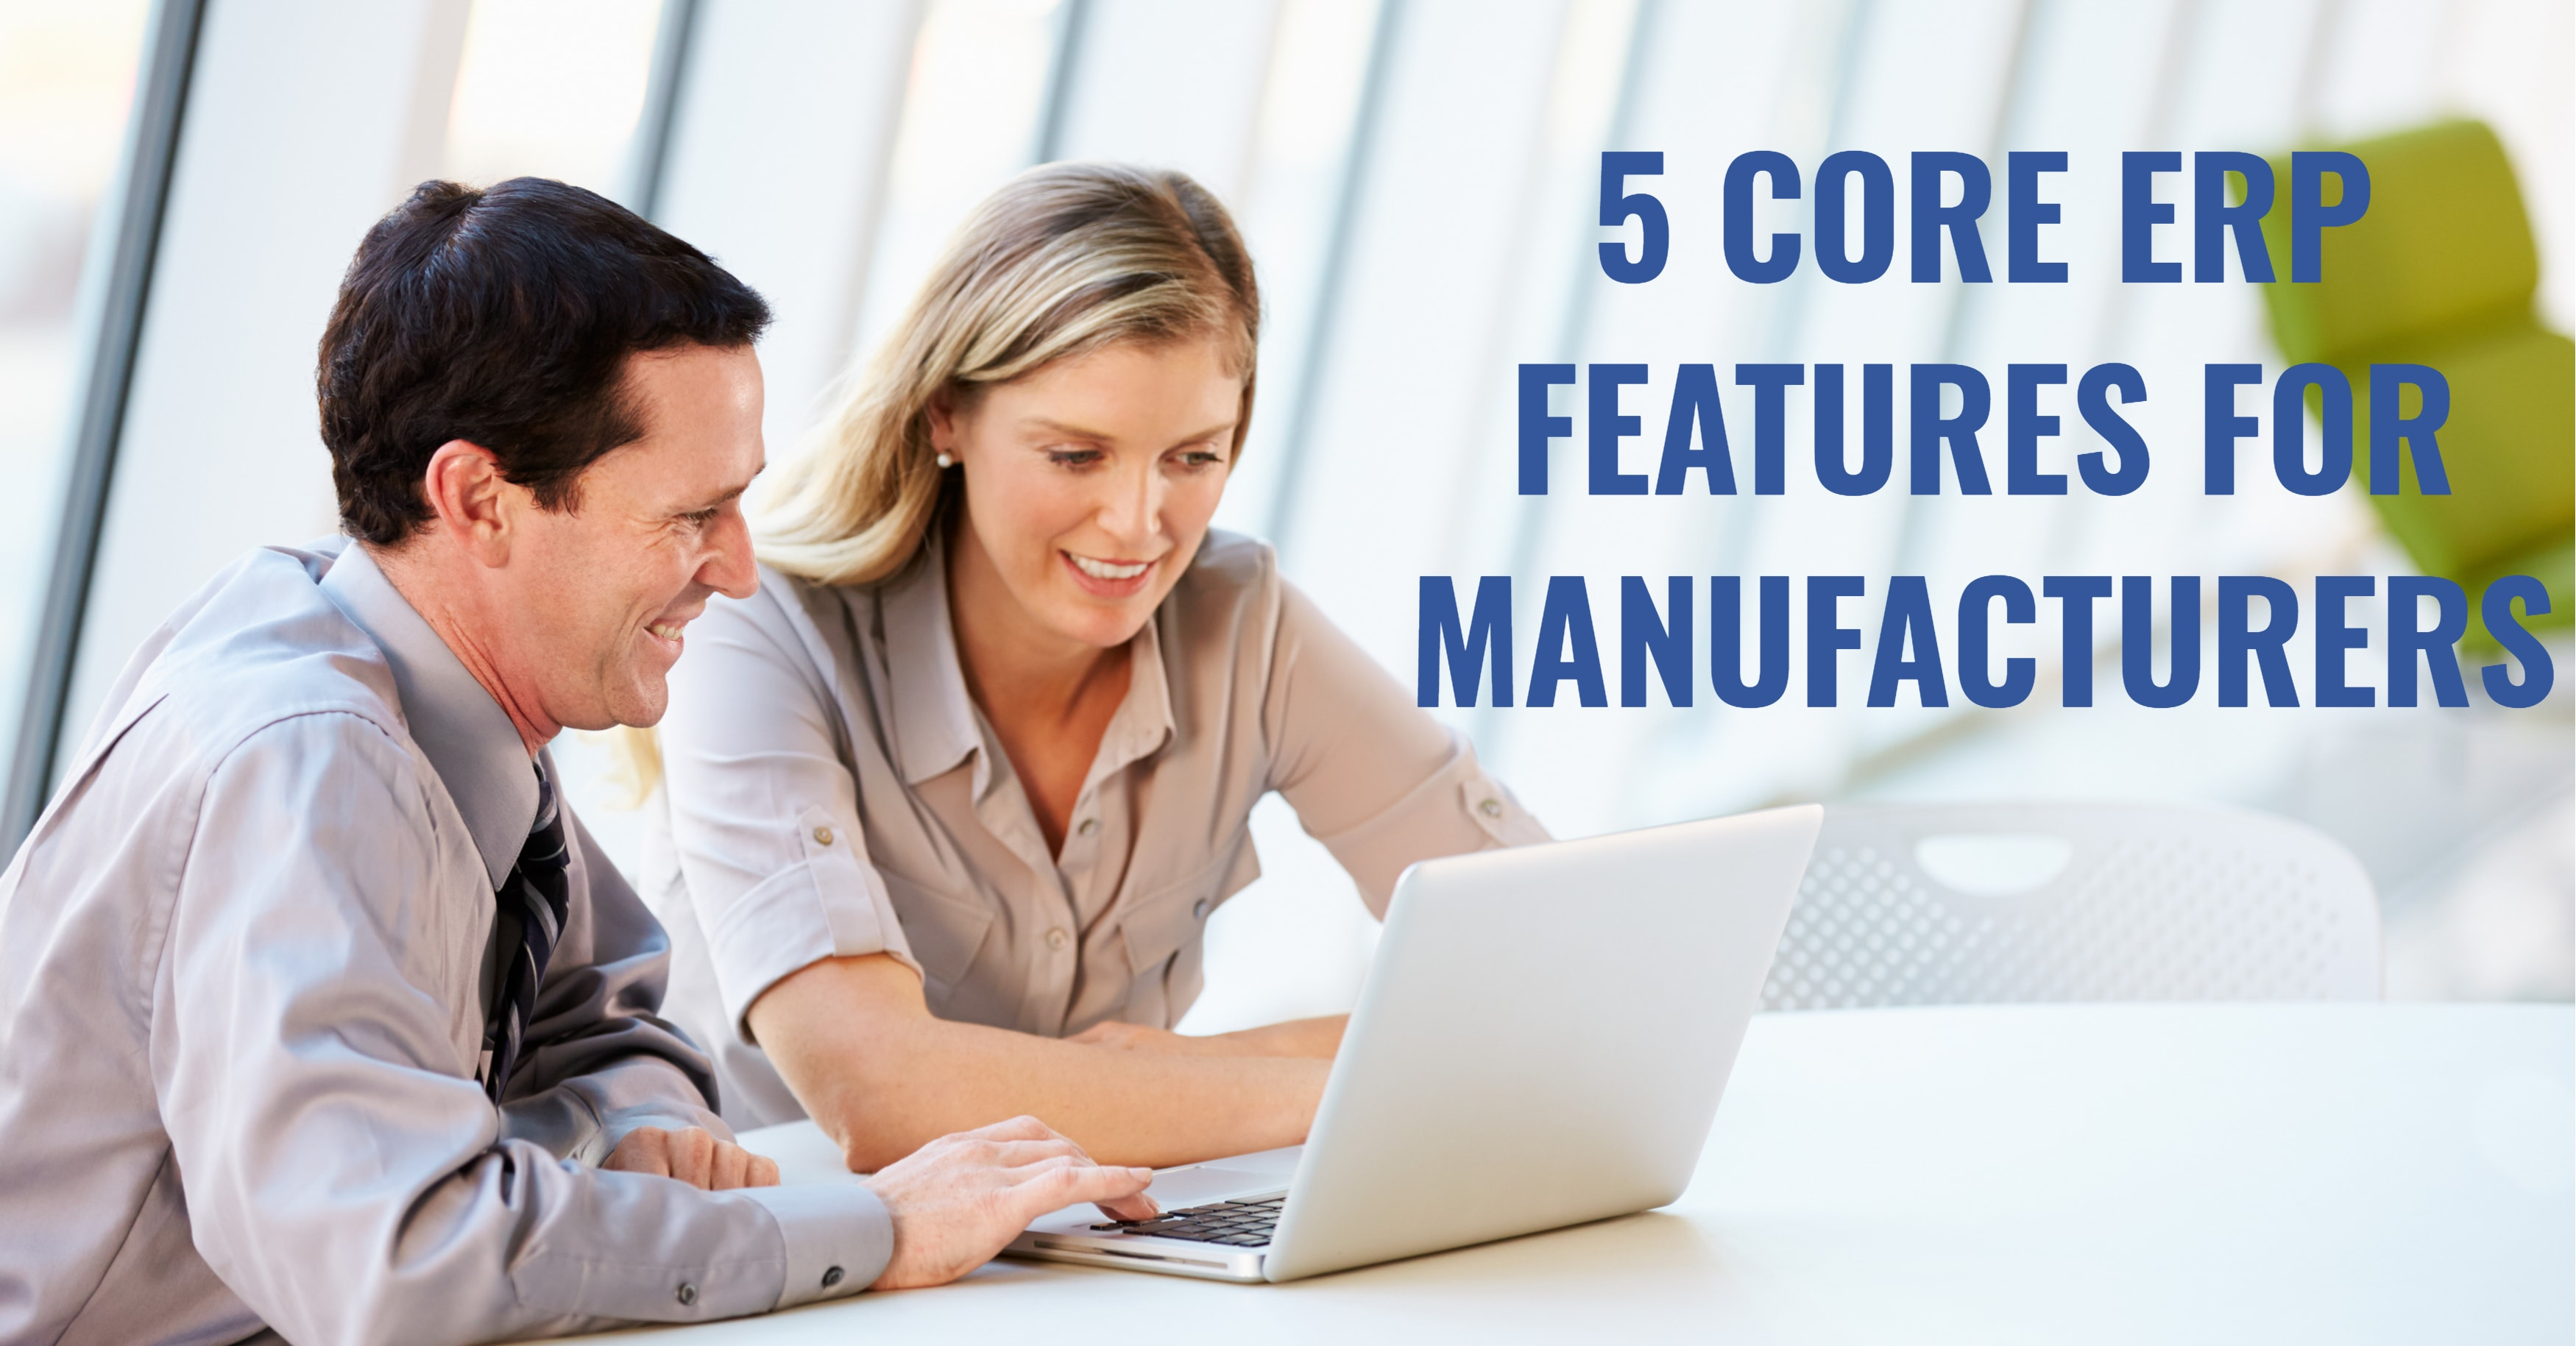 Core ERP Manufacturing Features